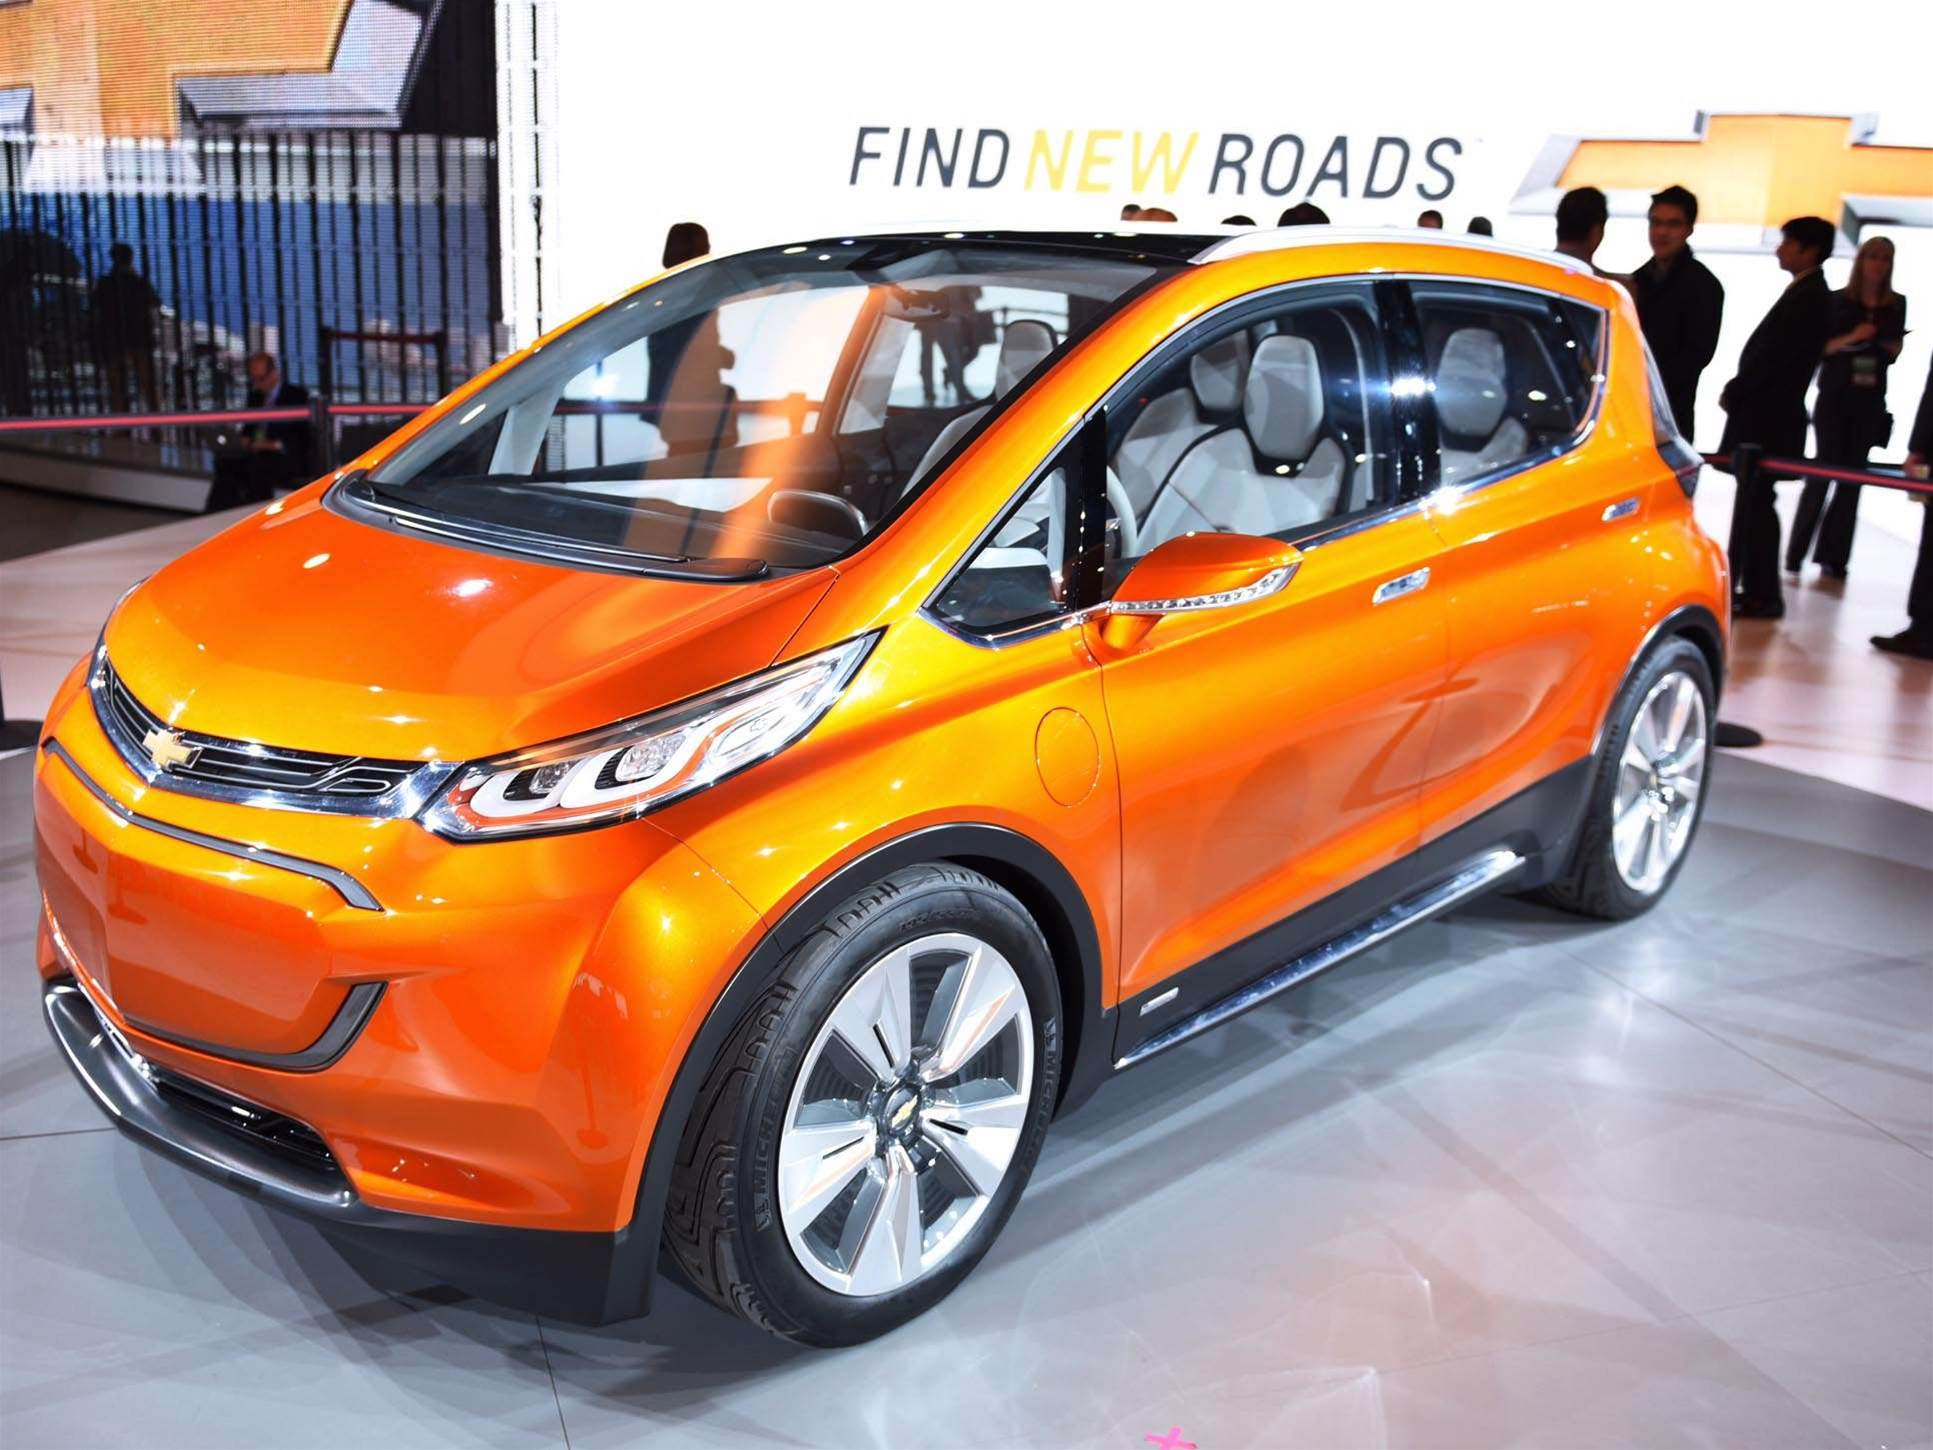 2015 Detroit Auto Show: Chevy's Bolt Could Beat Tesla Motors By More Than a Year